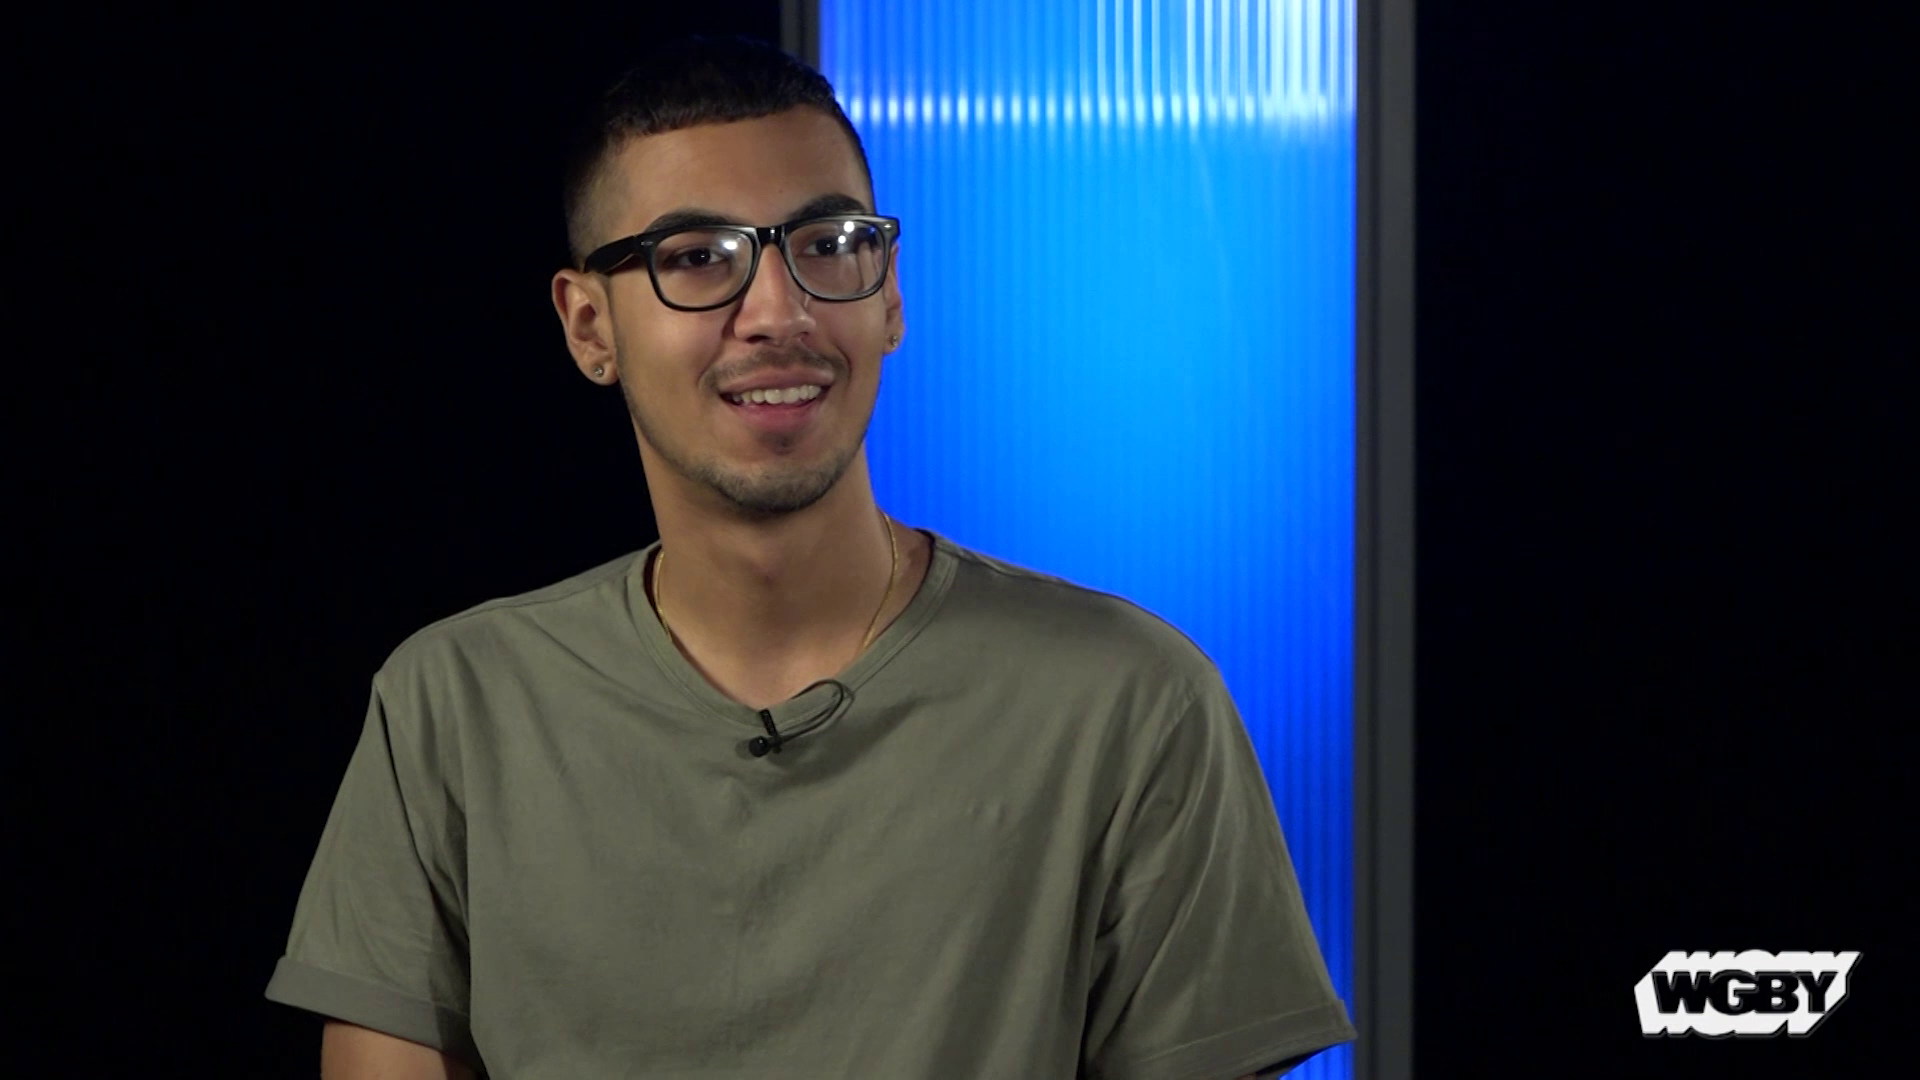 This summer, WGBY Latino Youth Media Institute Intern Joel Rivera helped facilitate workshops that teach students how to tell their own stories.